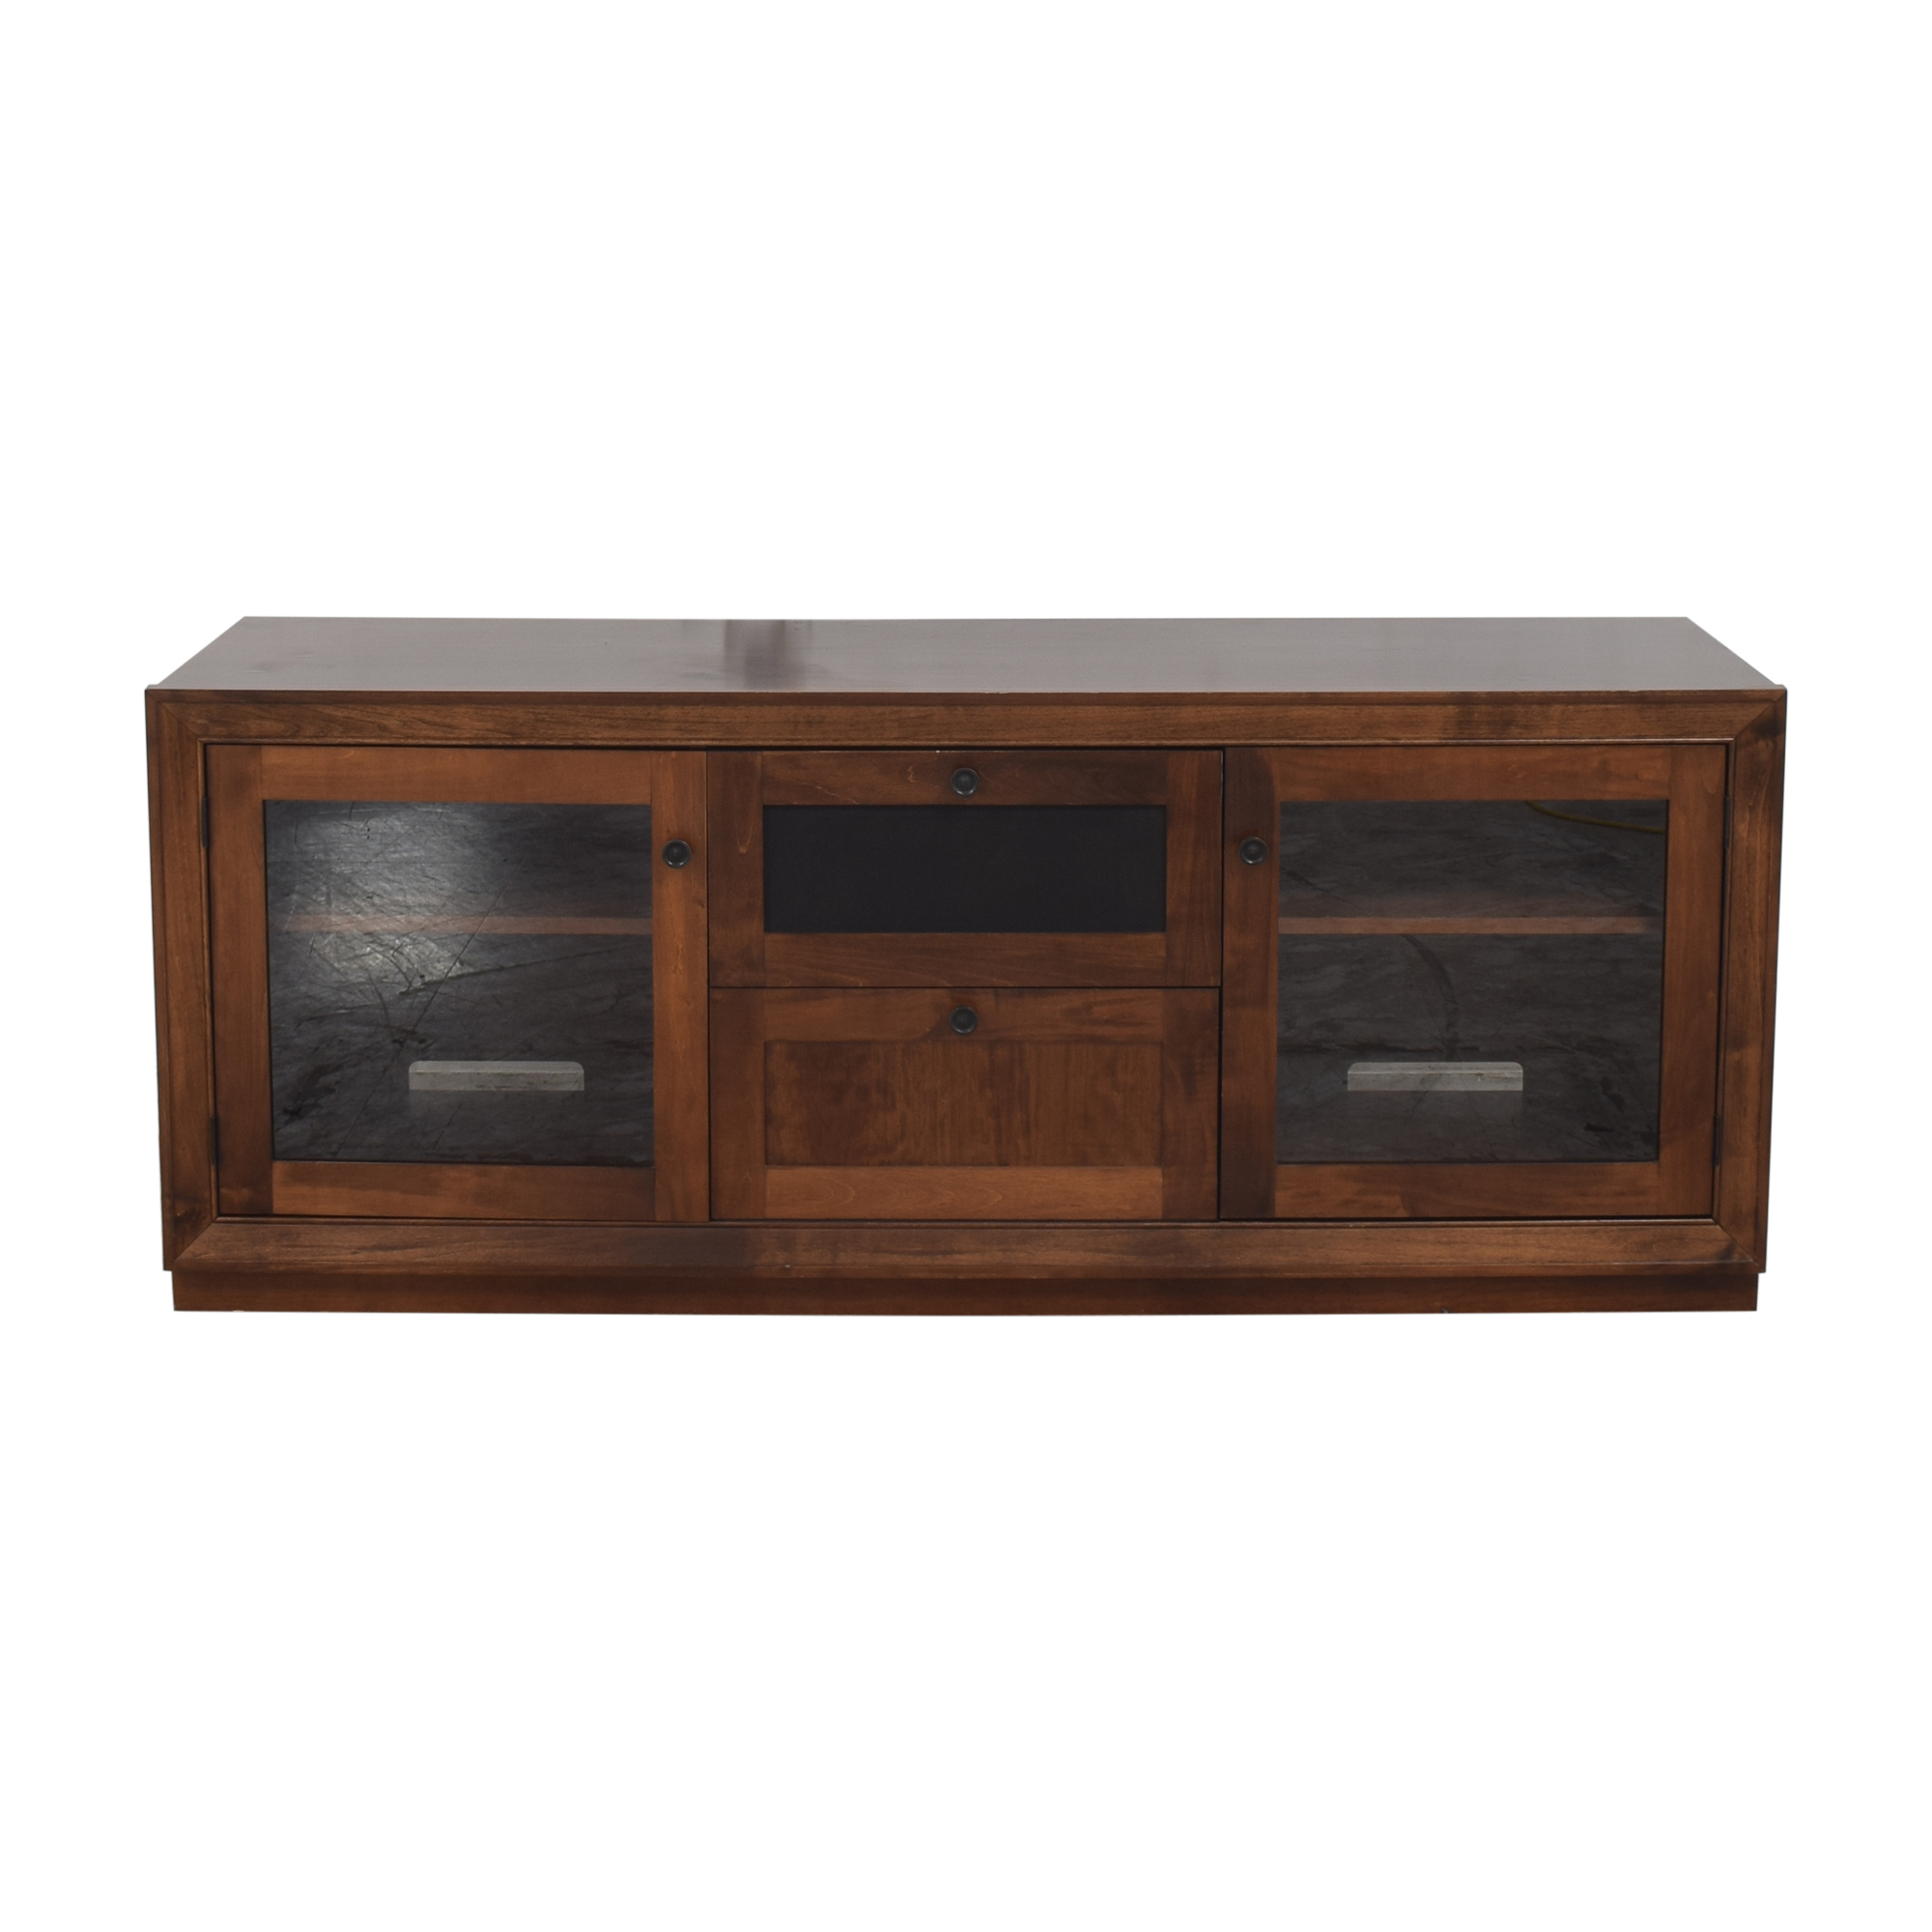 Crate & Barrel Media Console sale